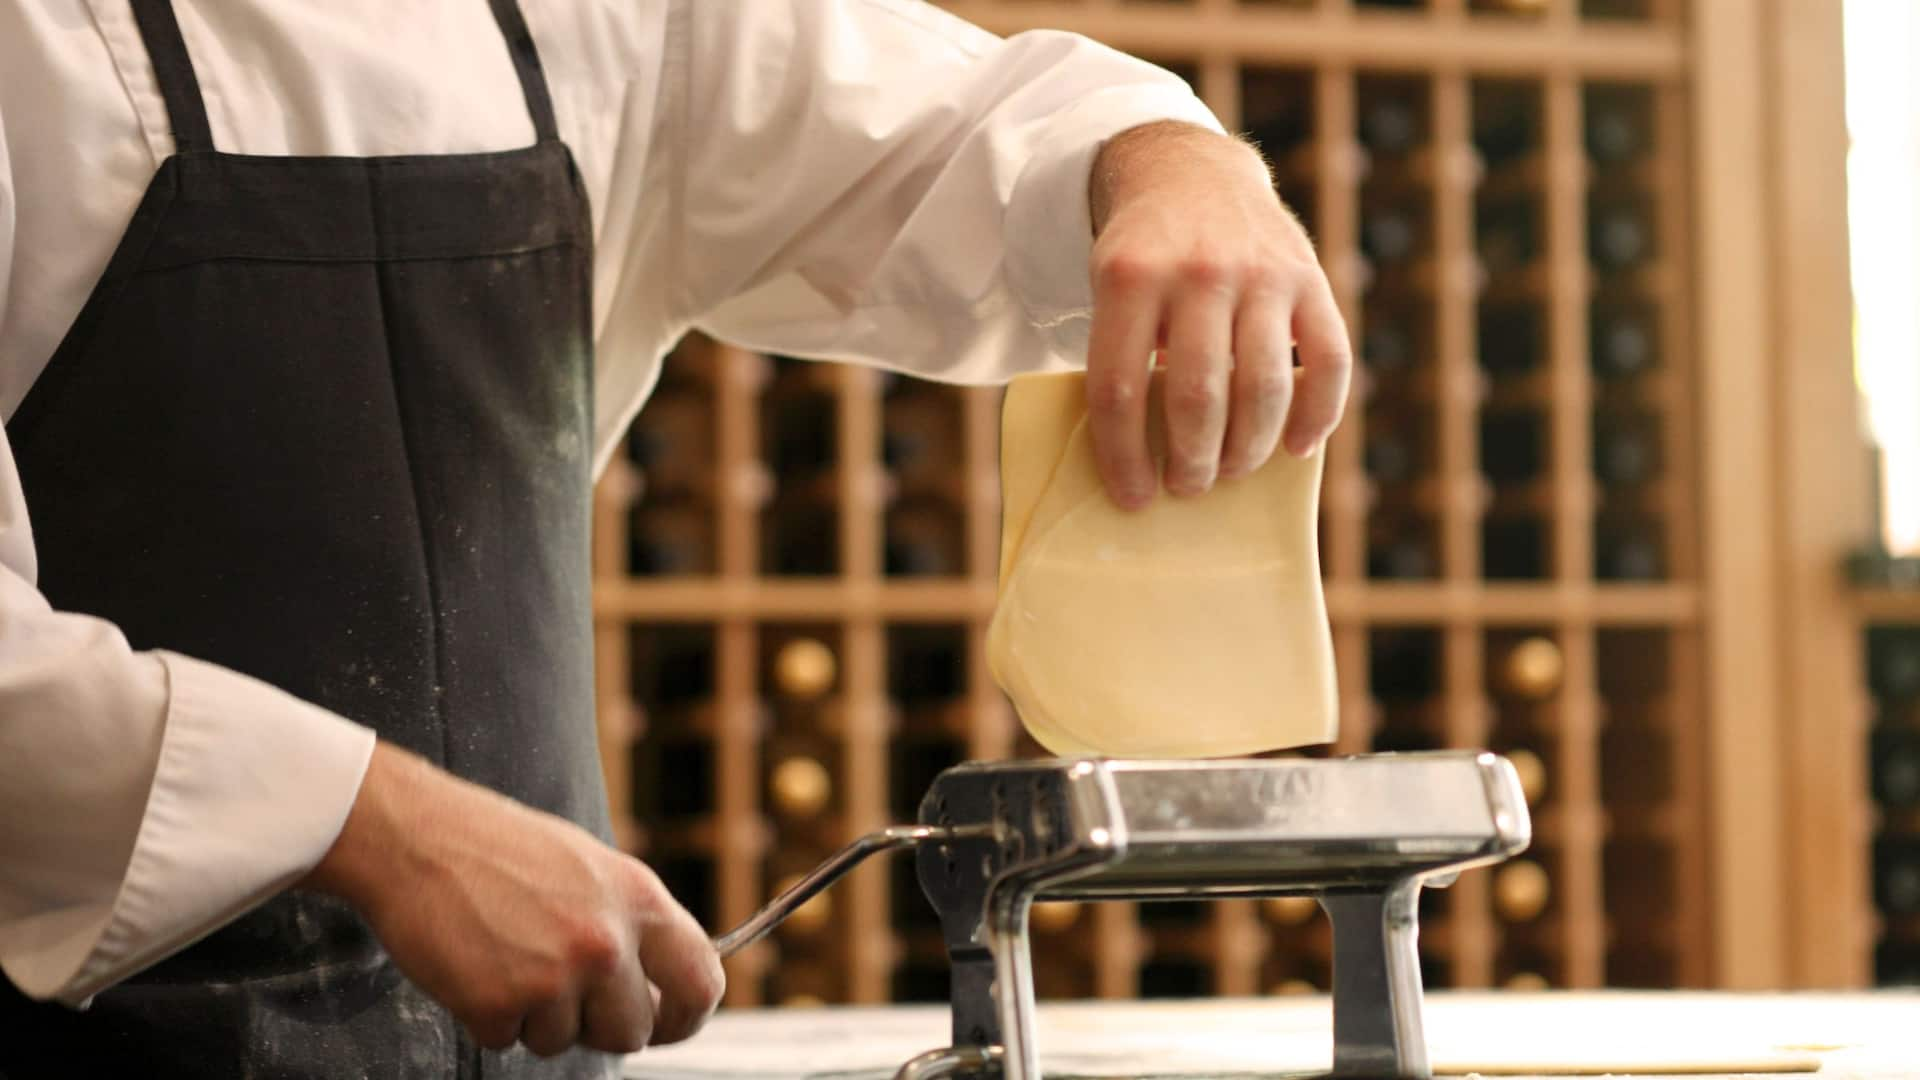 Man Making Homemade Pasta